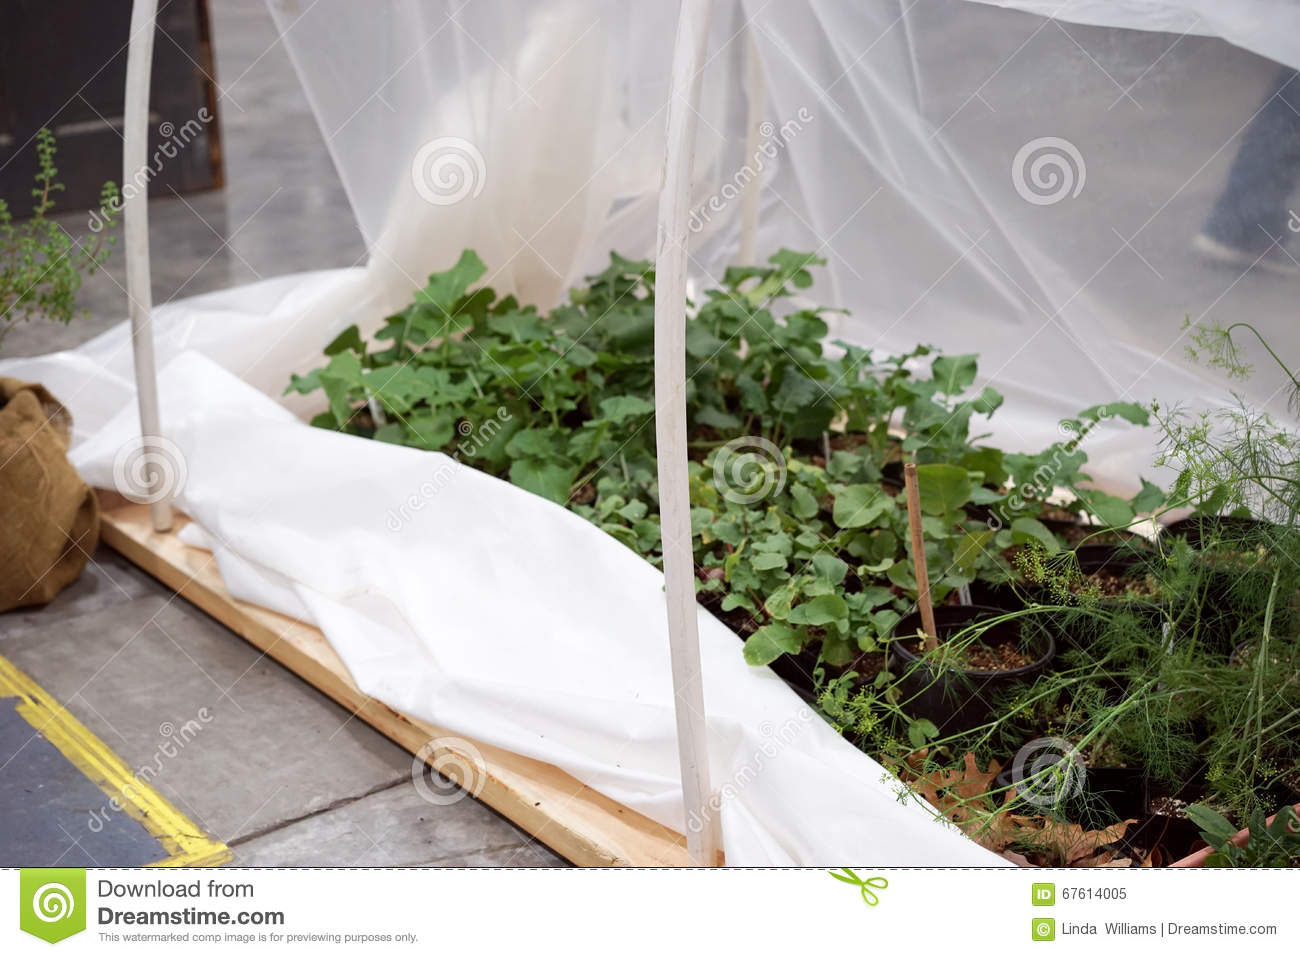 This simple DIY greenhouse is made from pvc pipe lumber and plastic. Herb plants are protected from killing frost and insects when covered. & DIY greenhouse for herbs stock image. Image of horticulture - 67614005